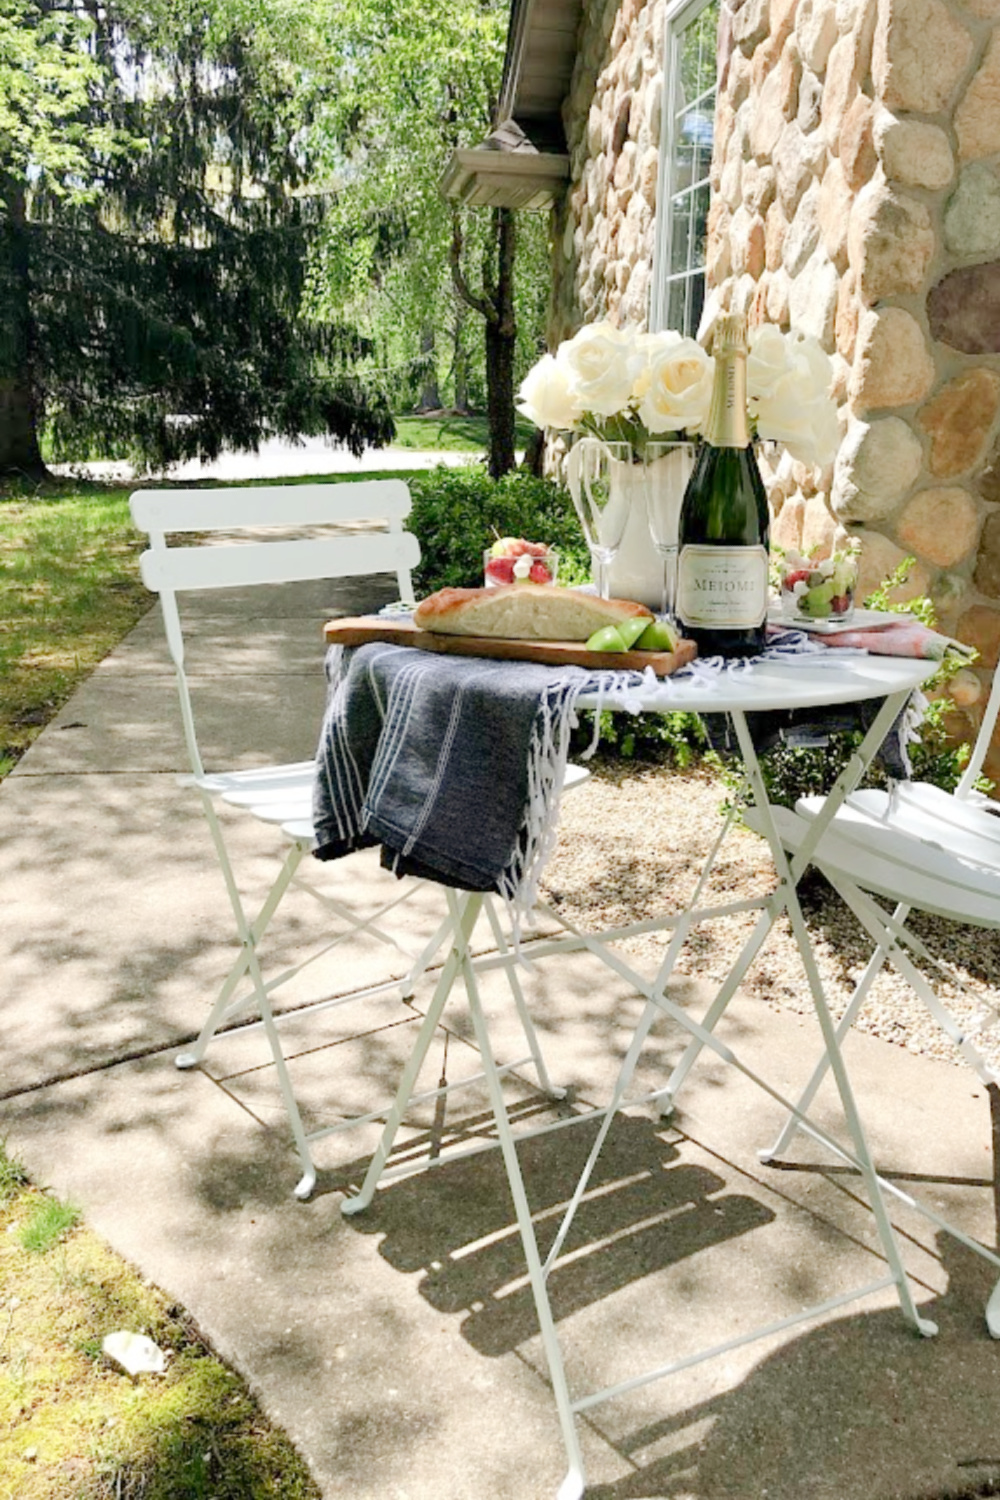 Rustic French country cafe dining in the garden with white roses on the table - Hello Lovely Studio. #frenchcafe #frenchcountry #bistroset #cafeset